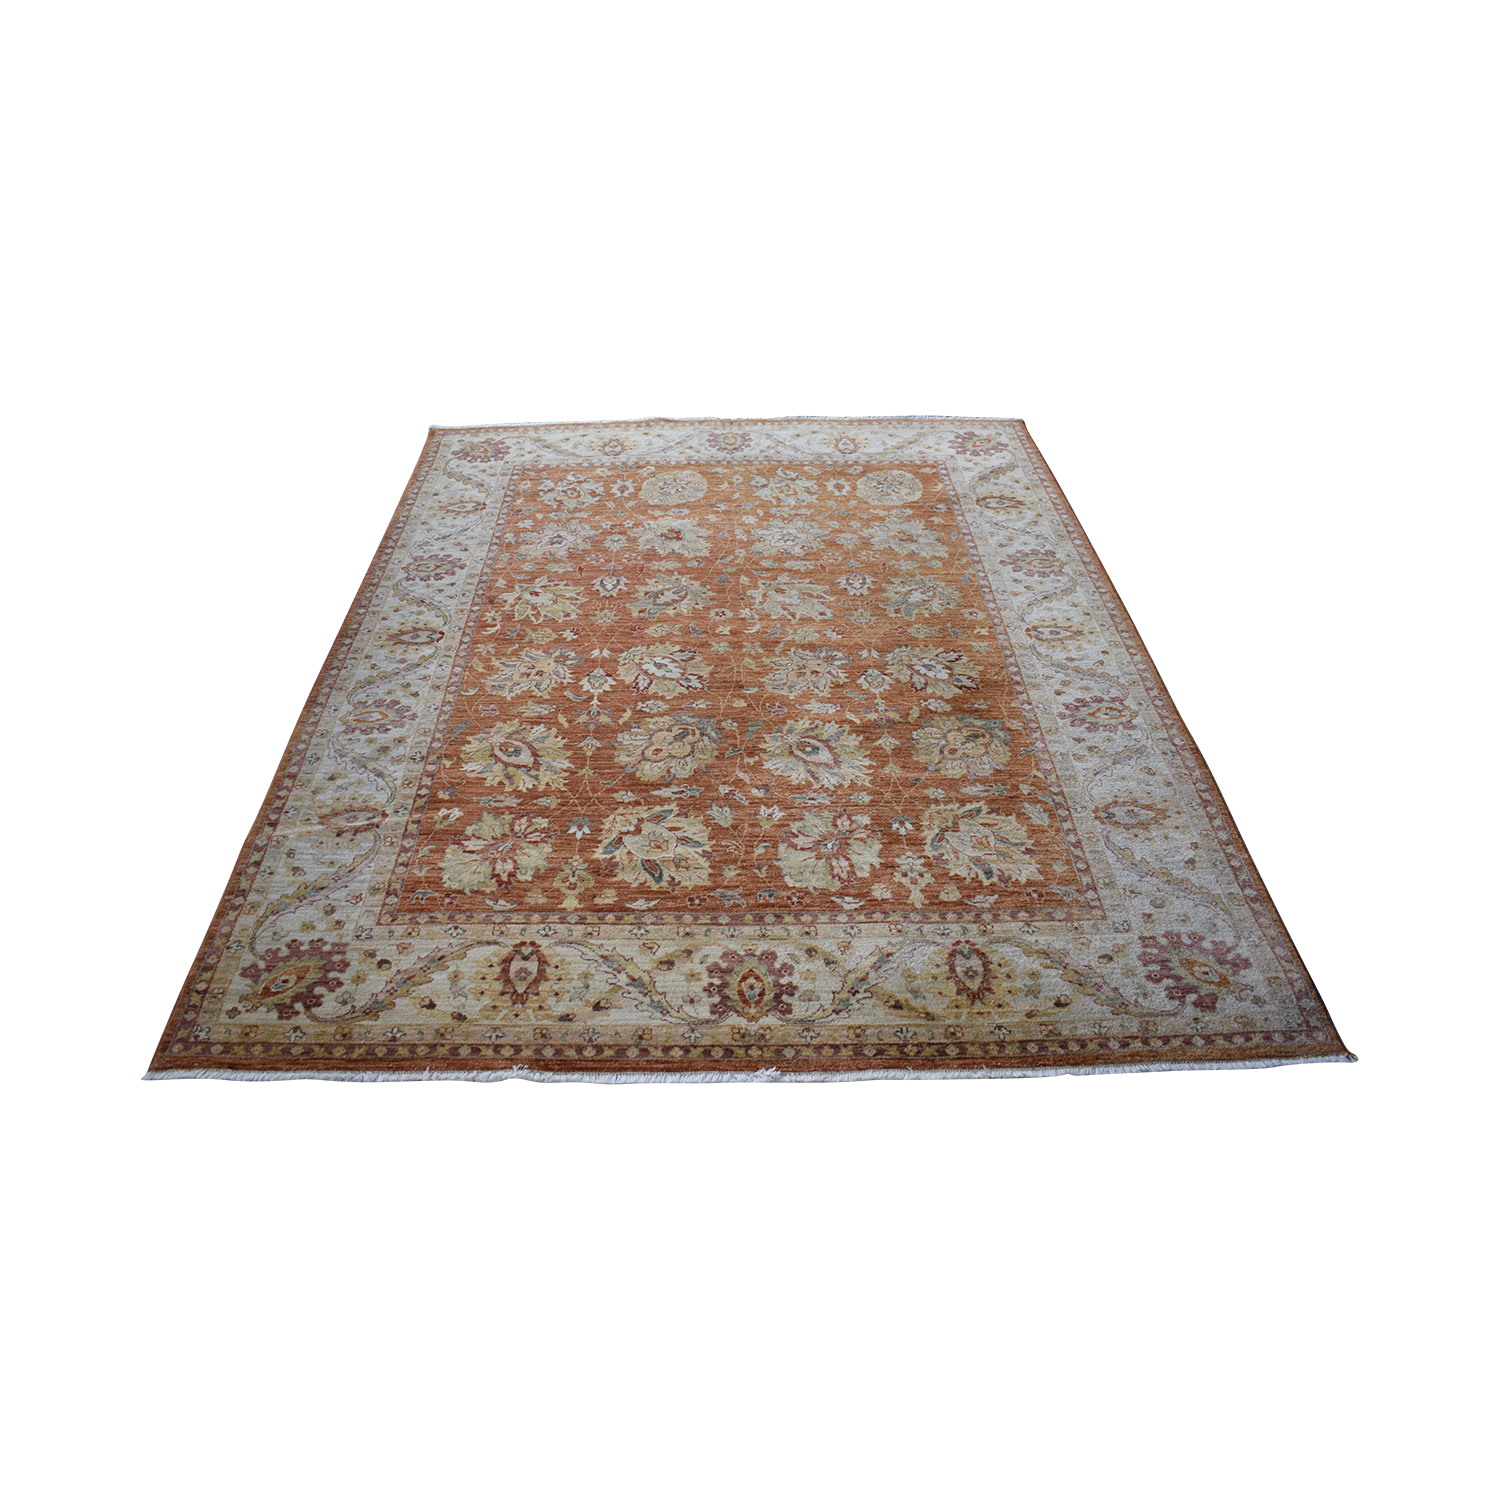 Macy's Hand Knotted Wool Area Rug sale